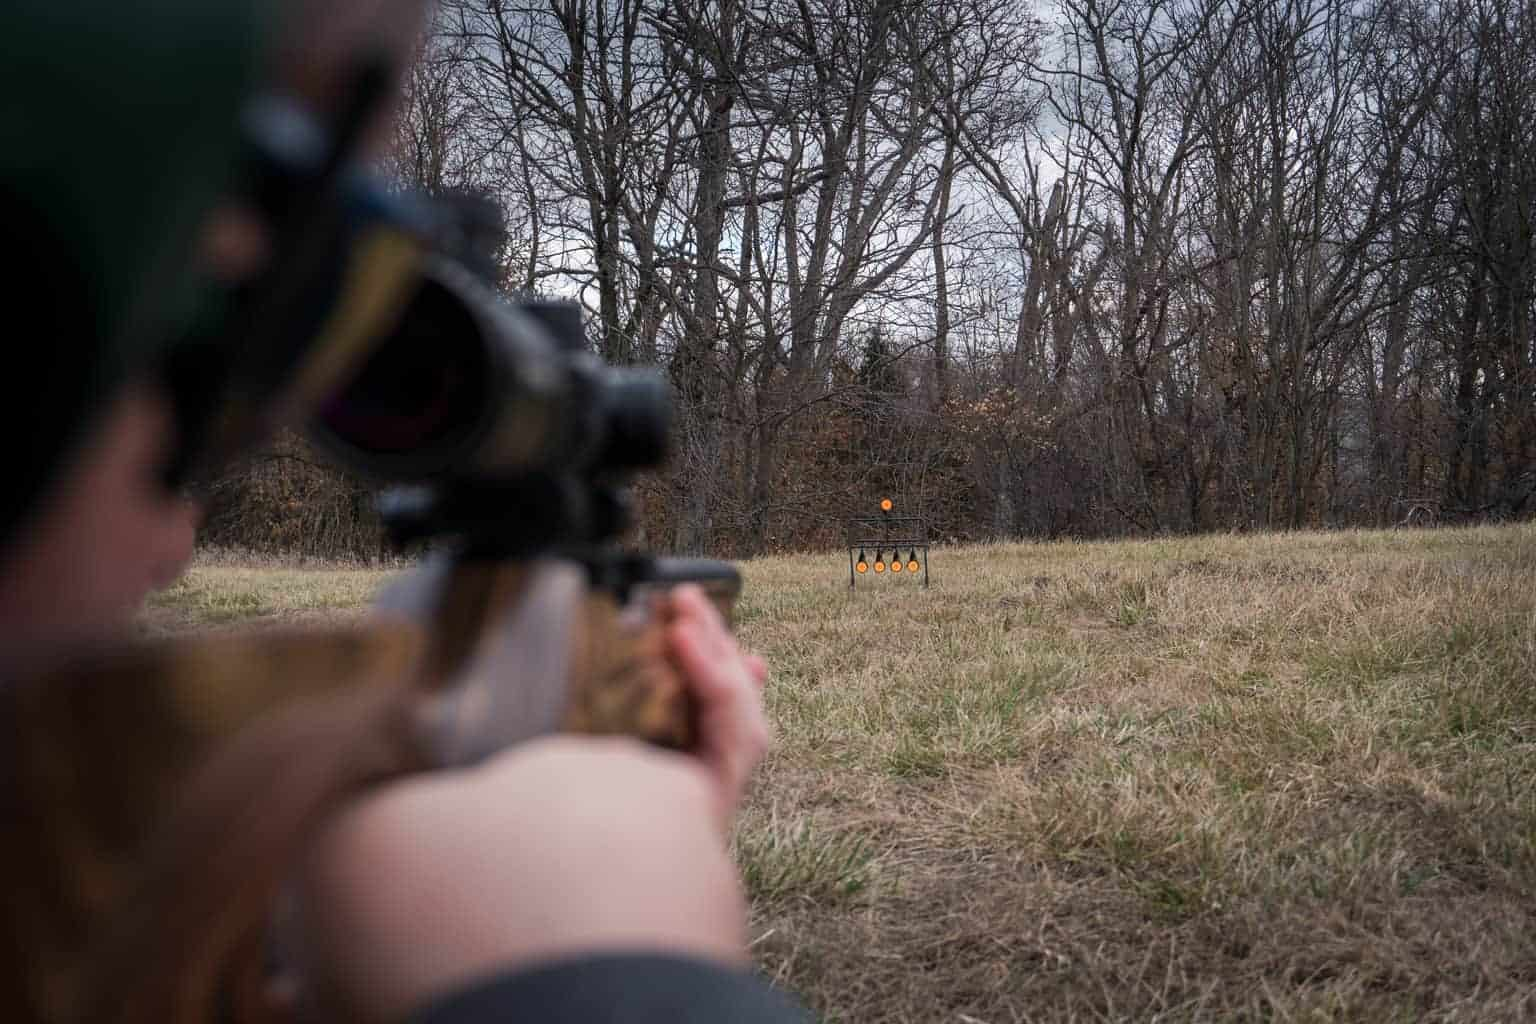 Rimfire Resetting Target - 902365 Action Rifle Shooting